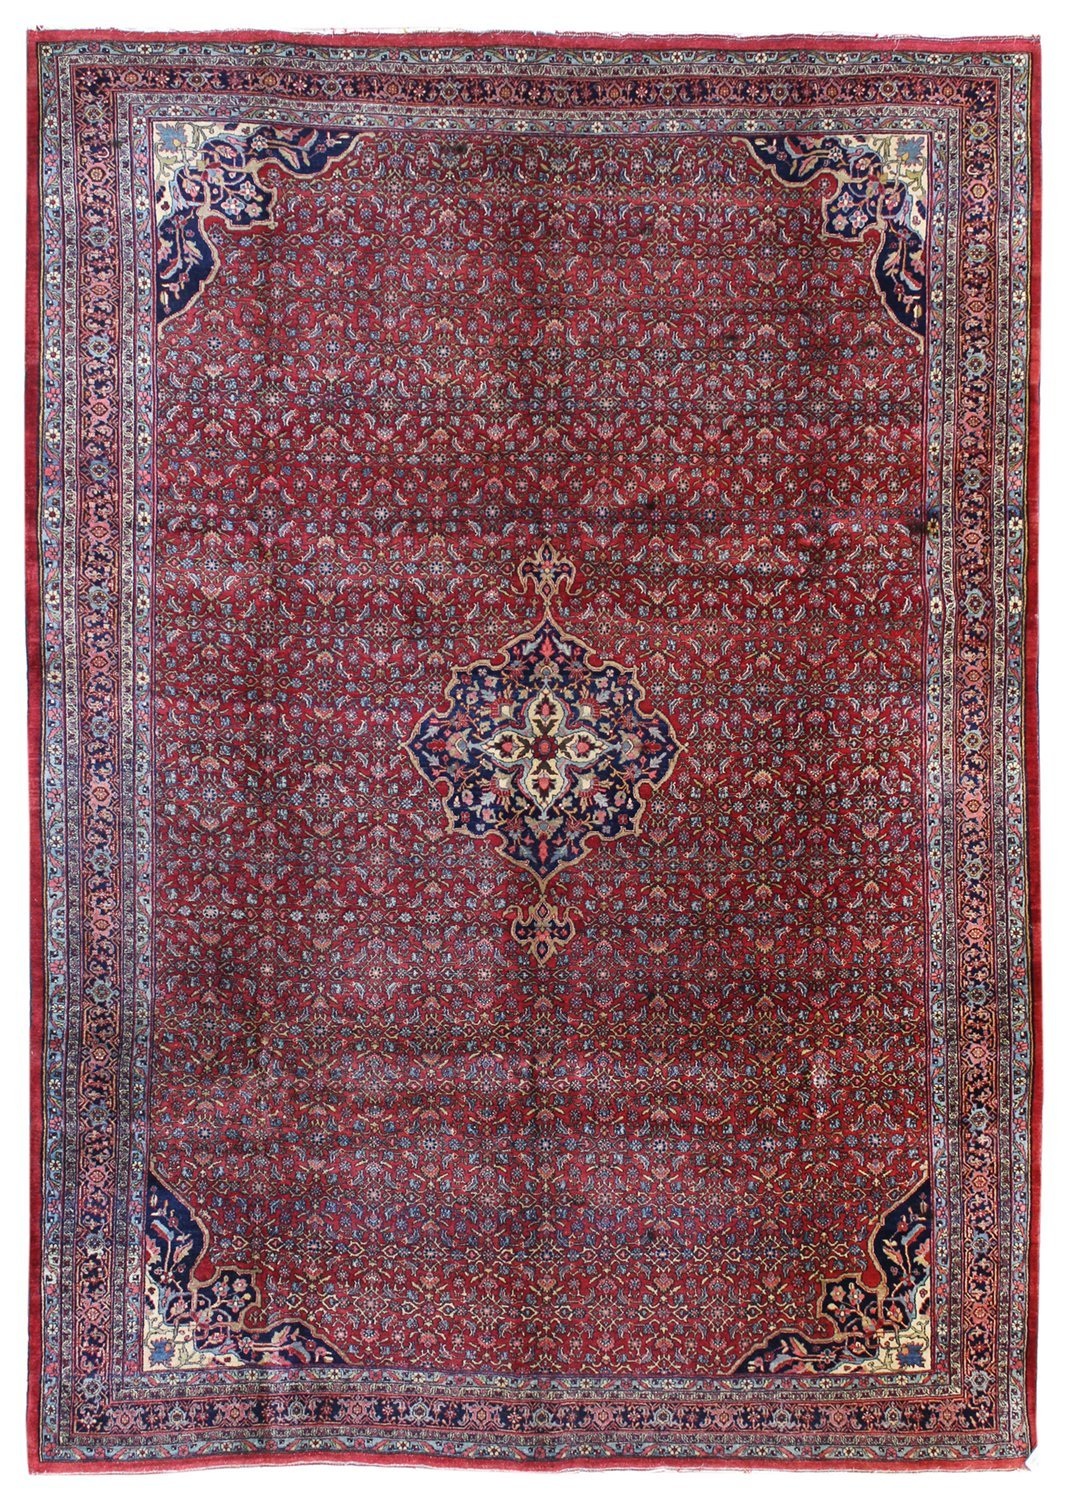 Antique Halvai Bijar Handwoven Tribal Rug